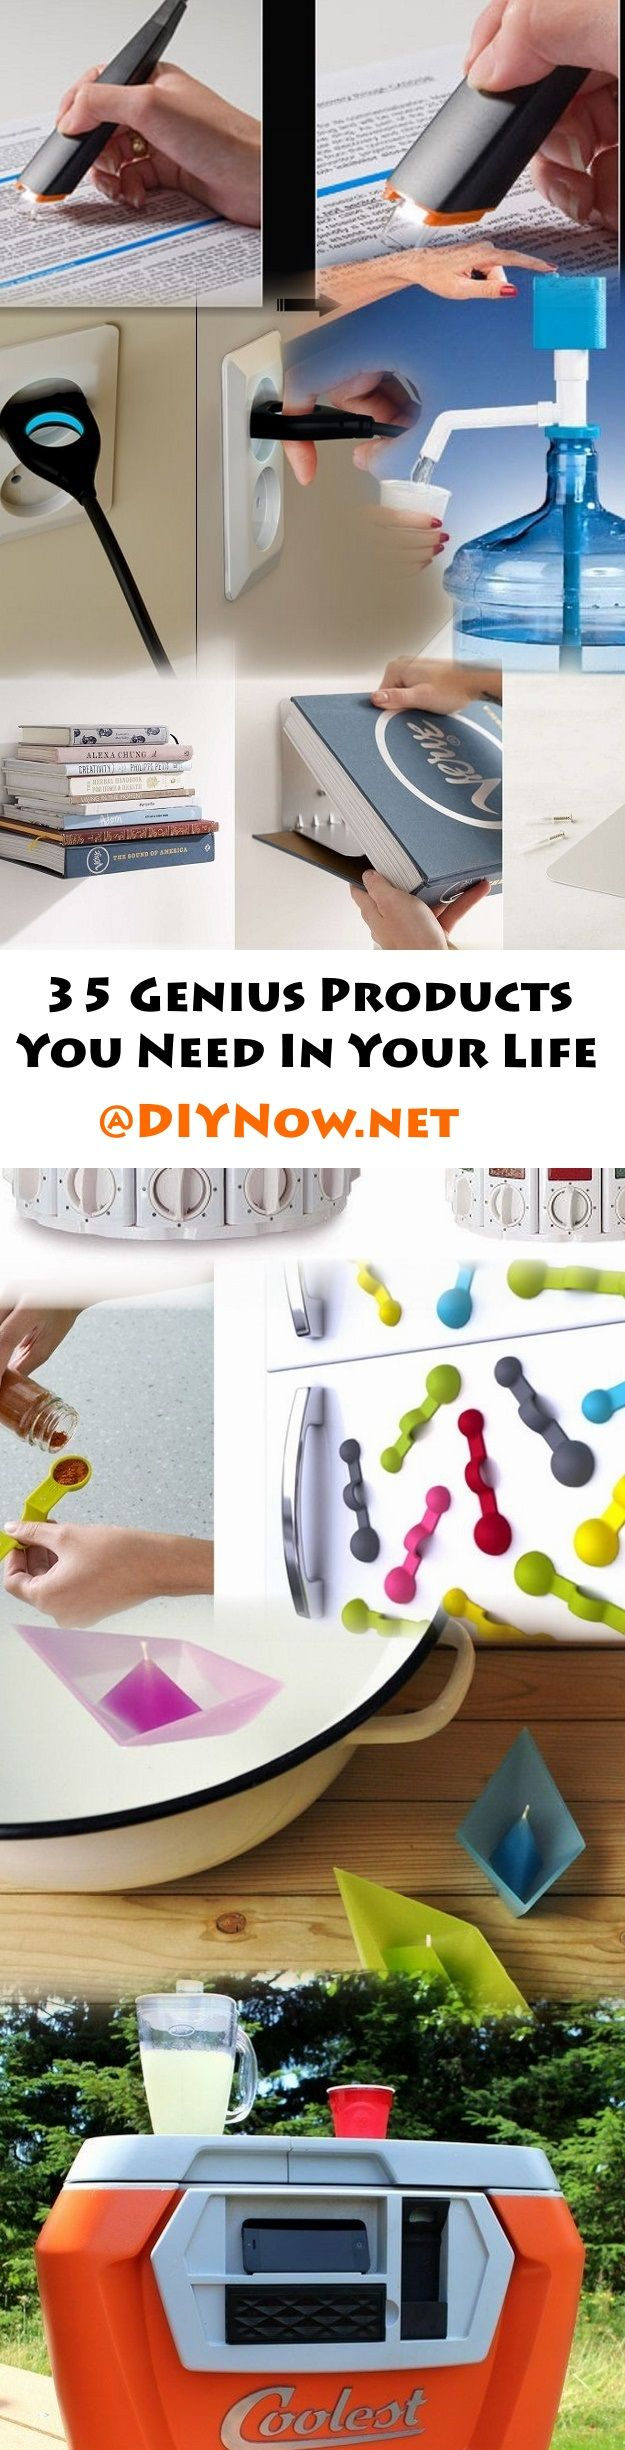 35 Genius Products You Need In Your Life